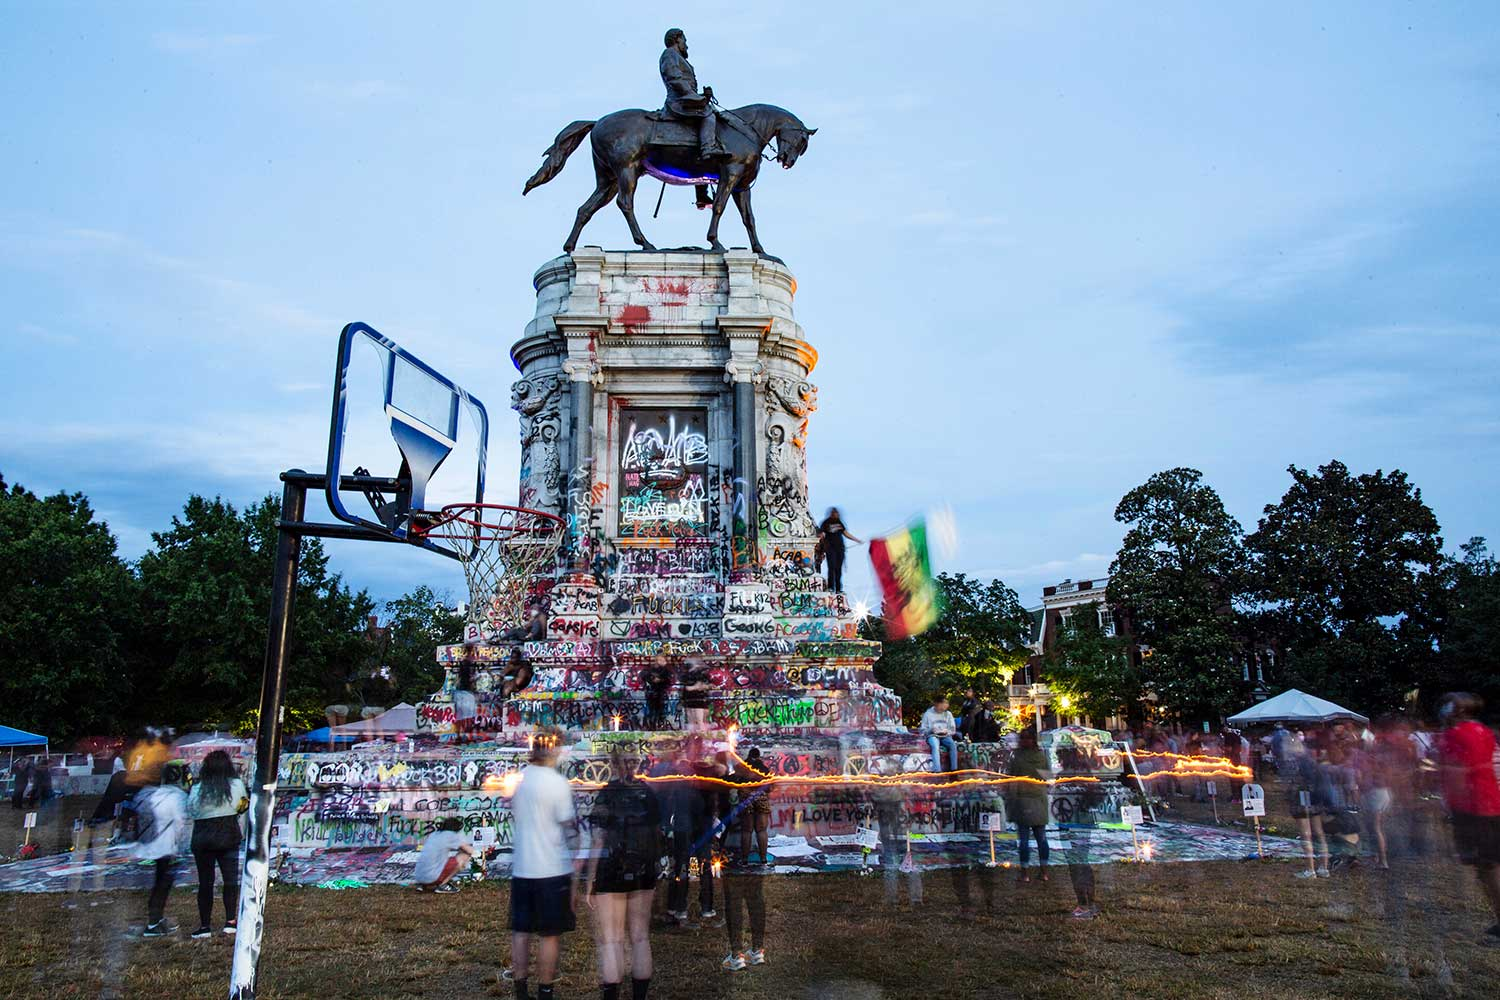 People gather around Richmond's Robert E. Lee statue, which is covered in colorful graffiti.